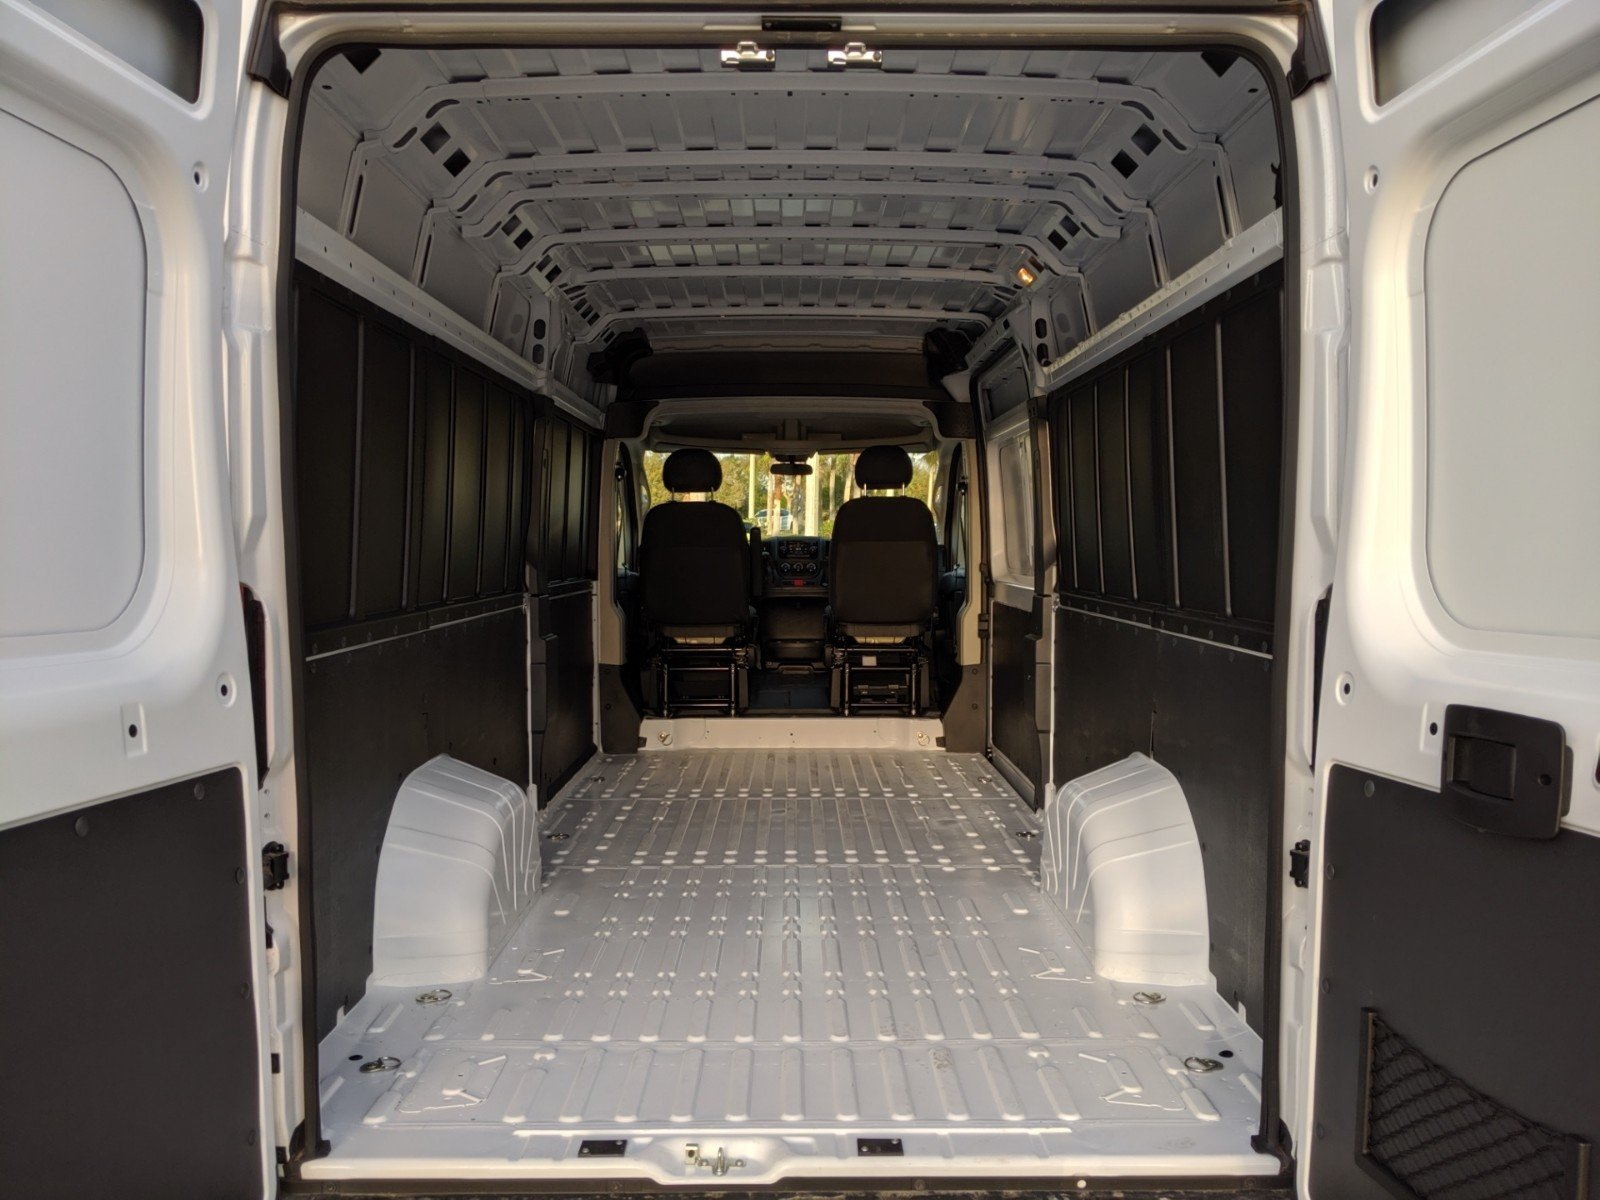 2020 Ram ProMaster 3500 High Roof FWD, Empty Cargo Van #R20155 - photo 1